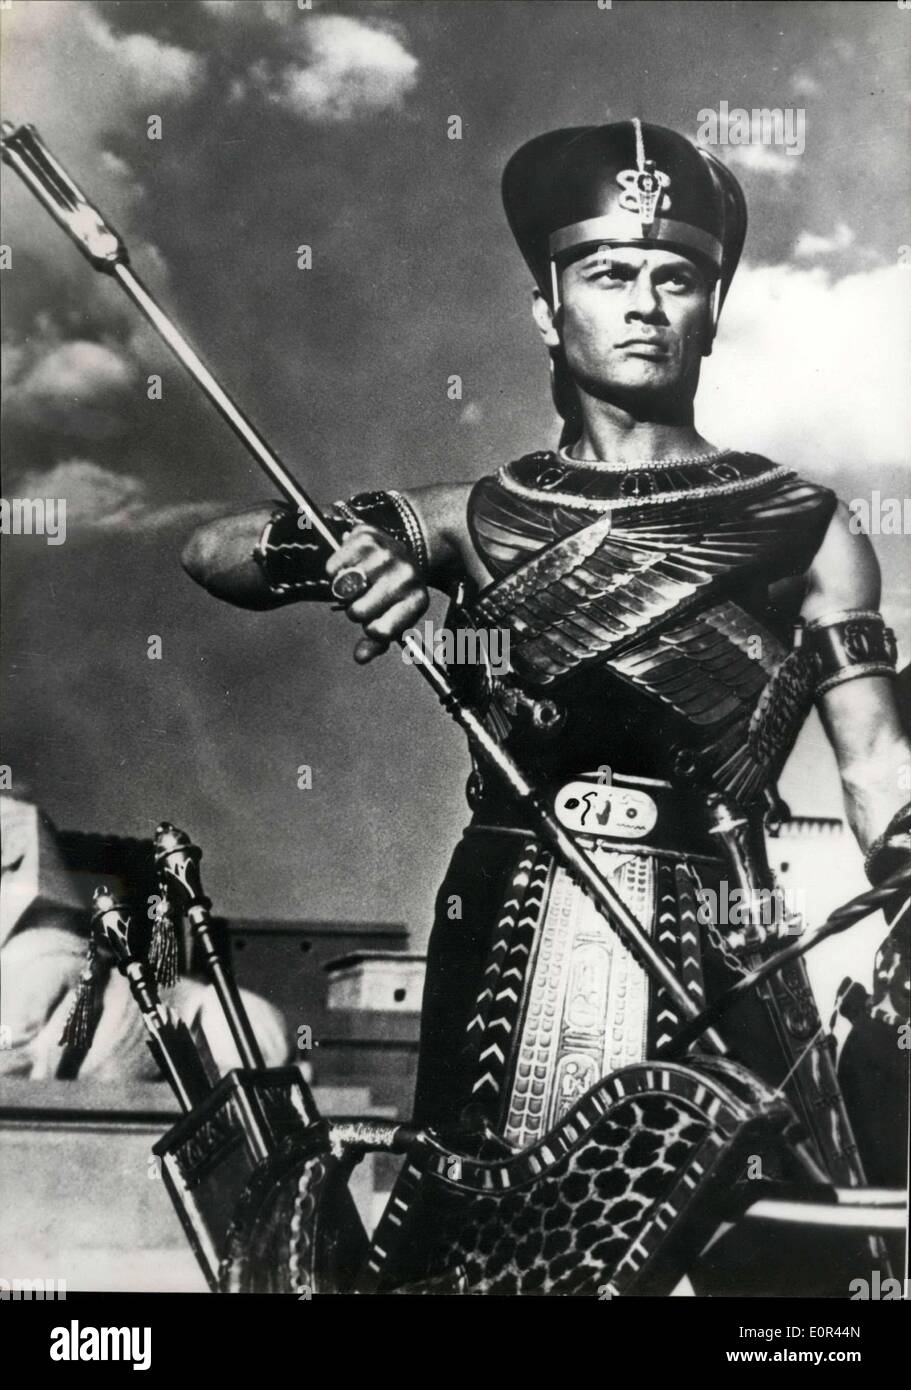 Jan. 17, 1958 - Cecil B. De Mille's new version of ''Ten Commandments'': Yul Brynner as Ramses II in the new version of ''Ten Commandments'' produced by Cecil B. De Mille. - Stock Image